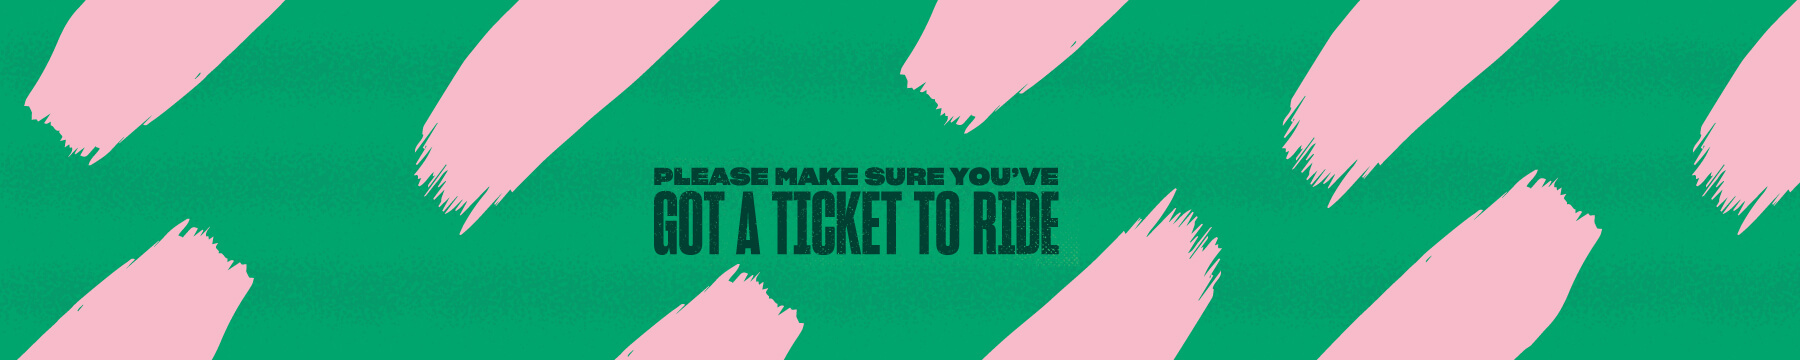 Please make sure you've got a ticket to ride